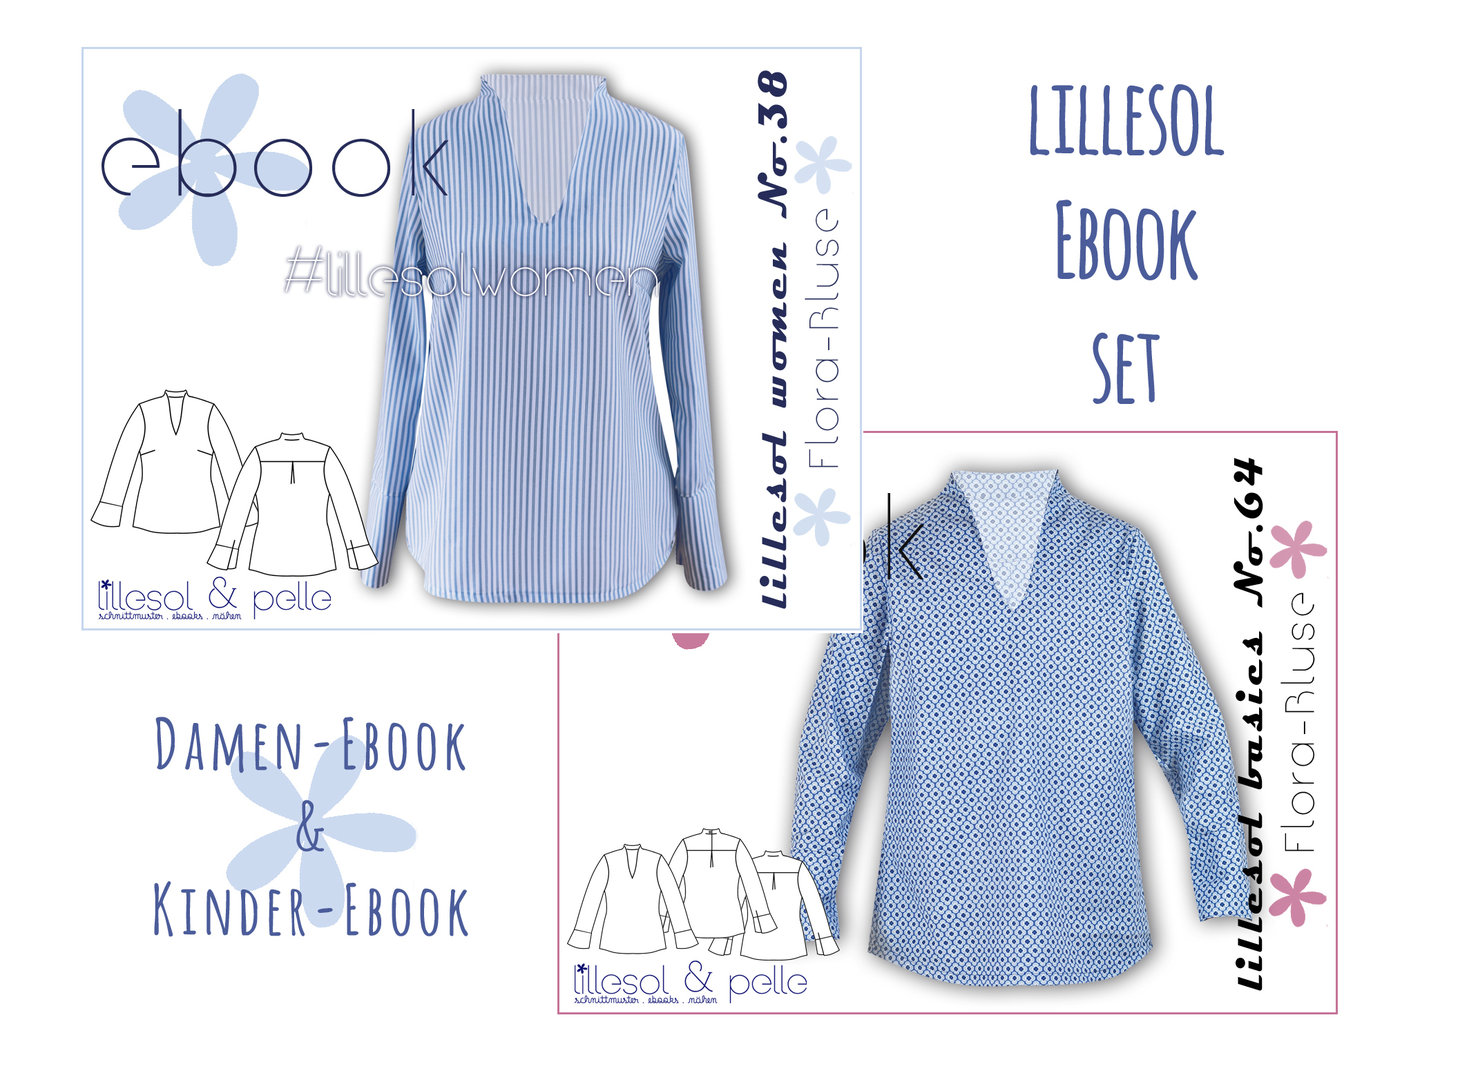 lillesol ebook set basics No.64 und women No.38 * mit Video-Nähanleitung *